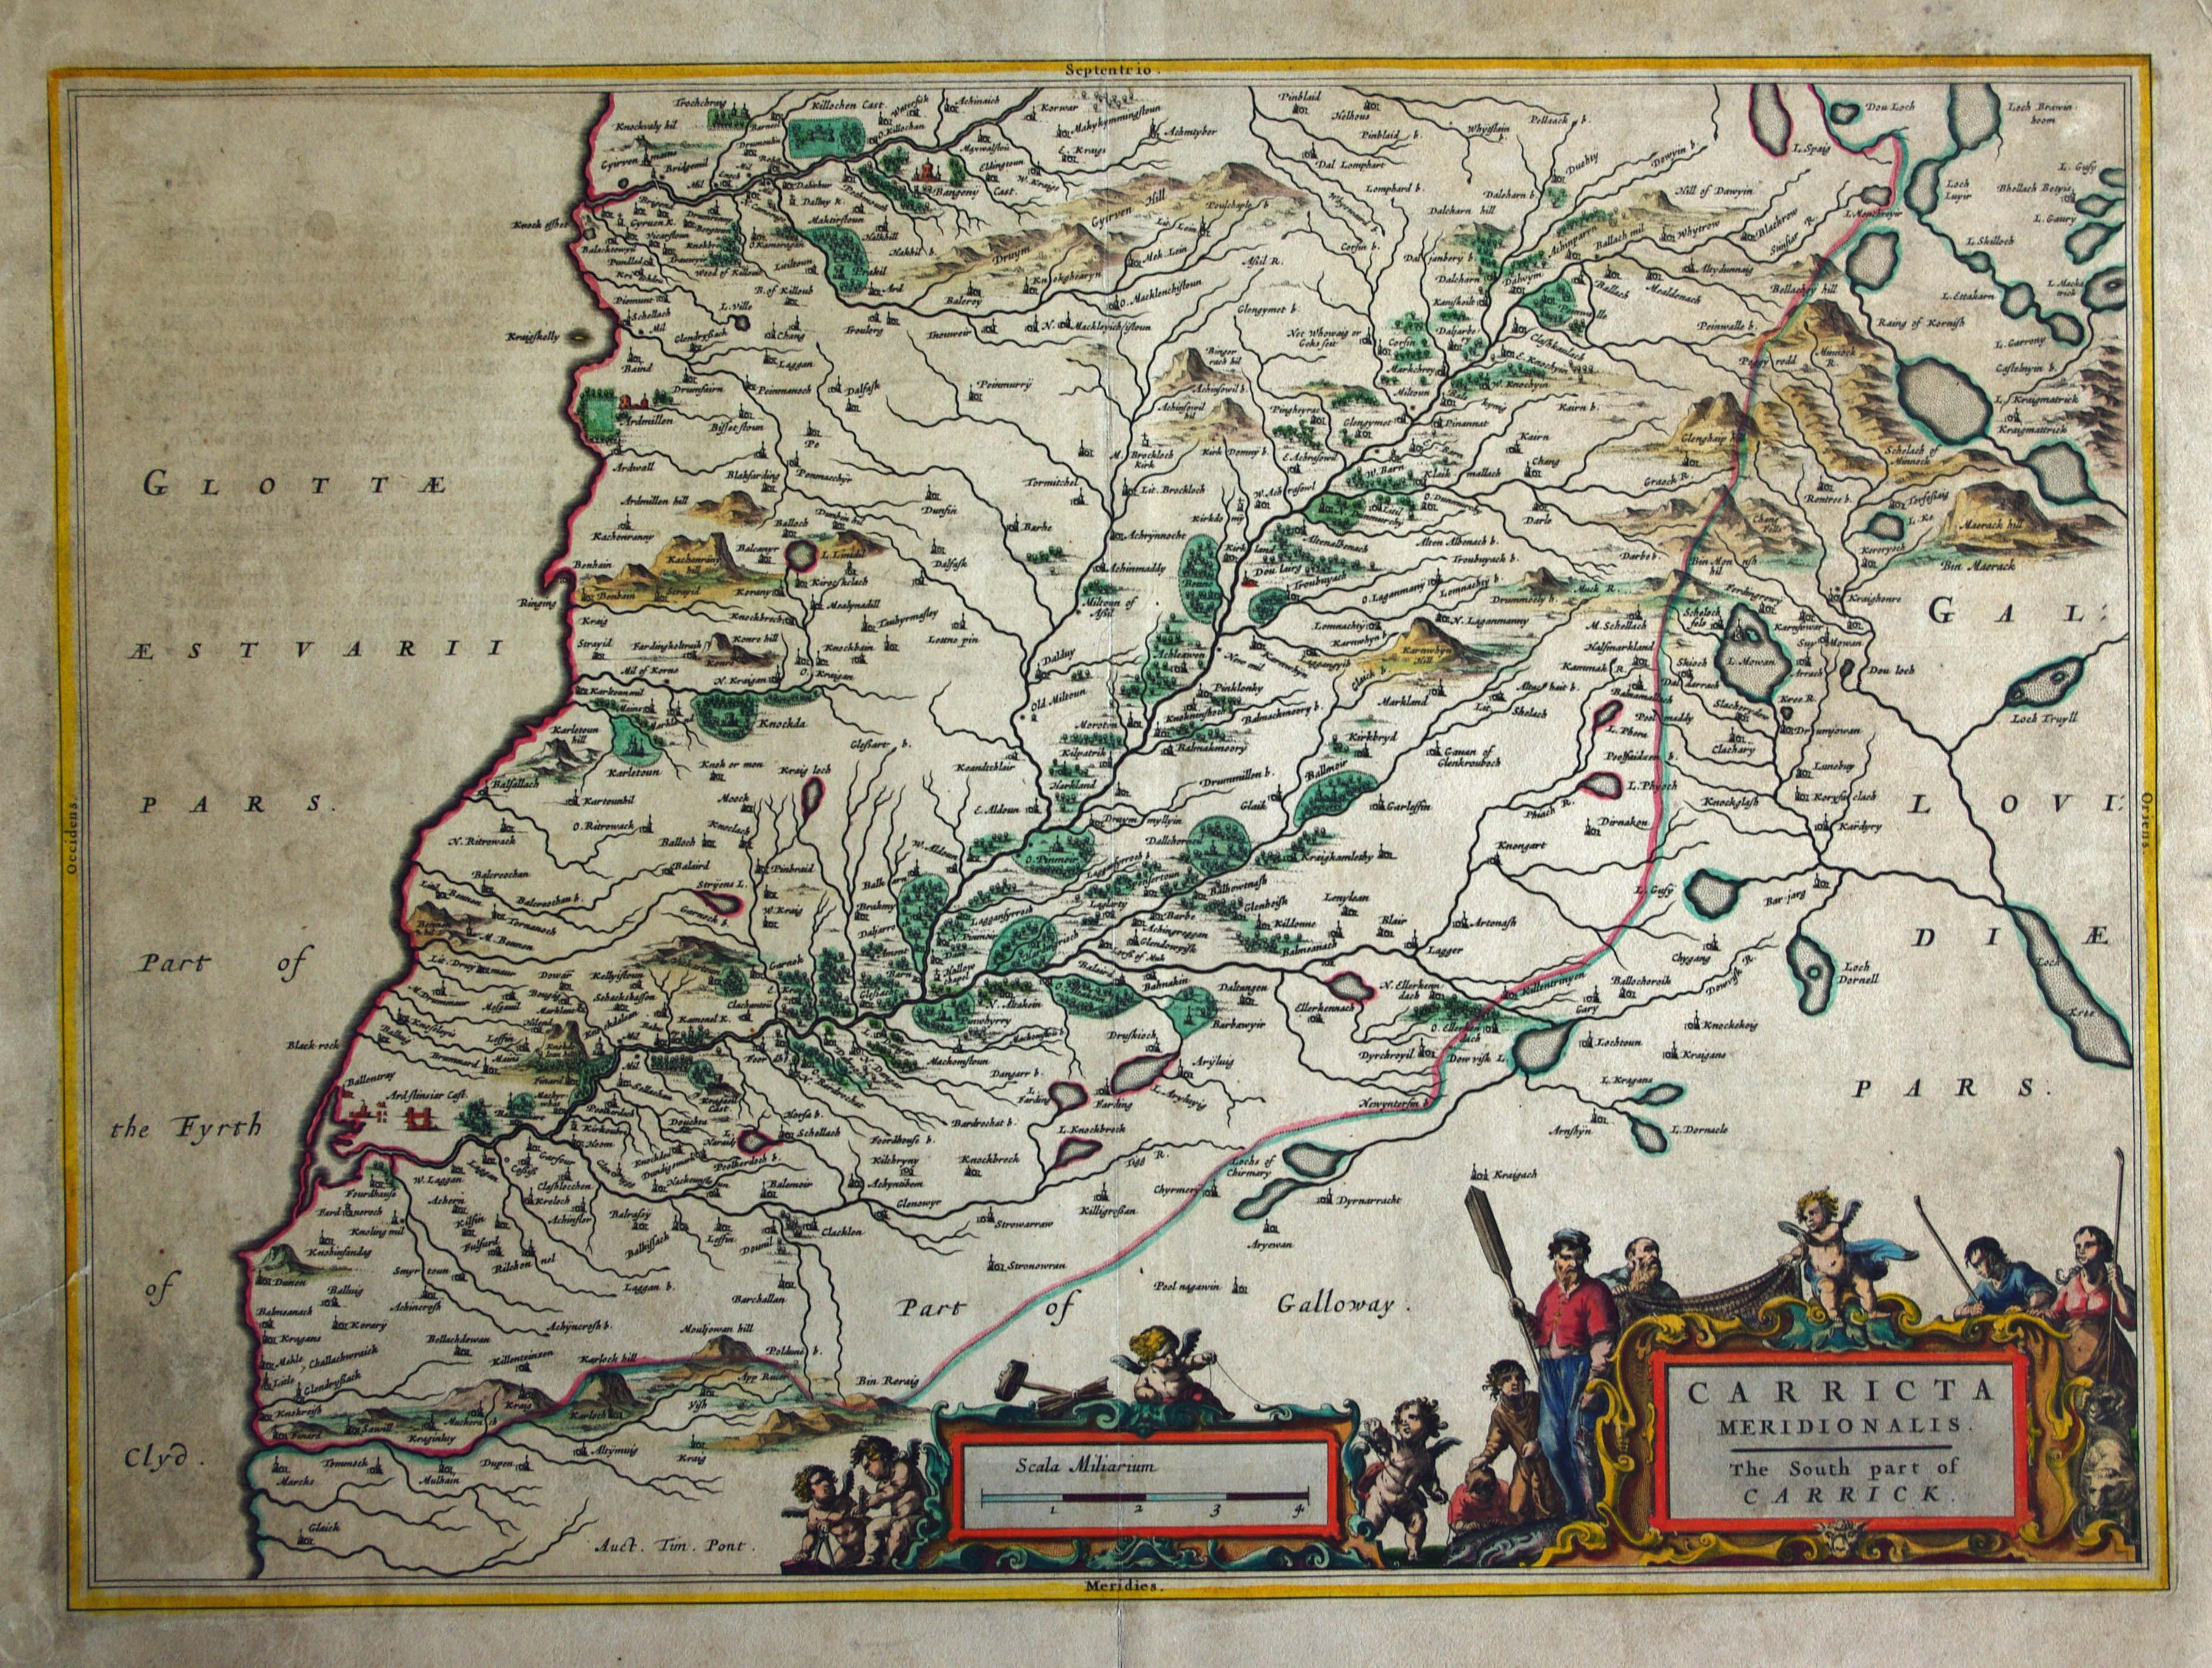 Blaeu's map of South Carrick, click for full res image